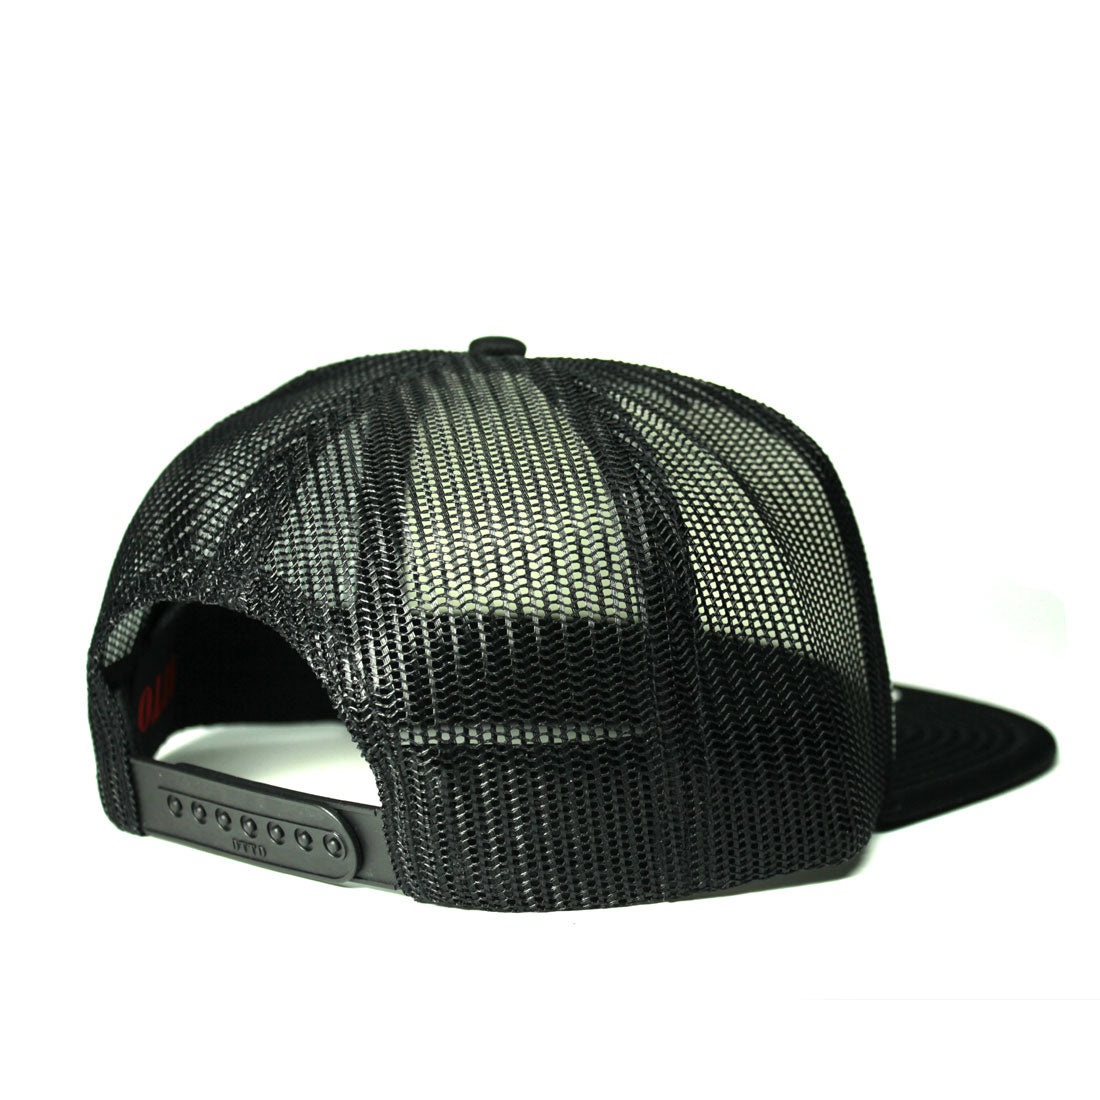 Black and white trucker hat back view | RIZNWILD